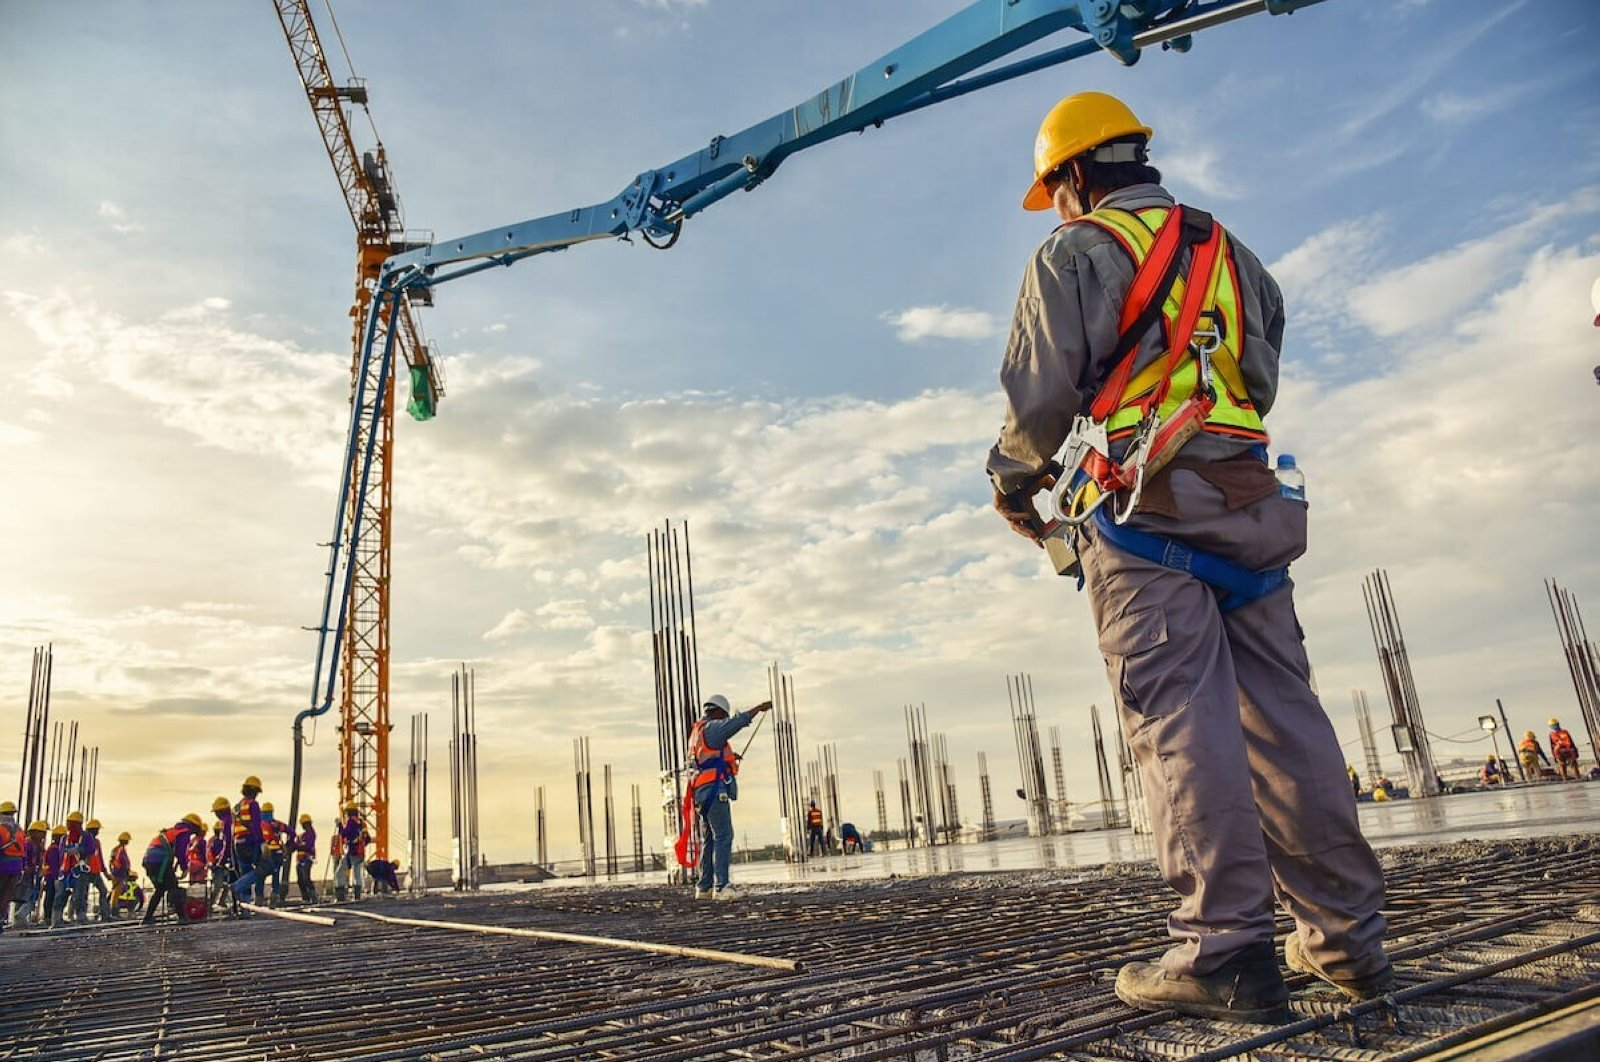 The construction sector employs 1.3 million people in Turkey, according to February 2020 data. (IHA File Photo)